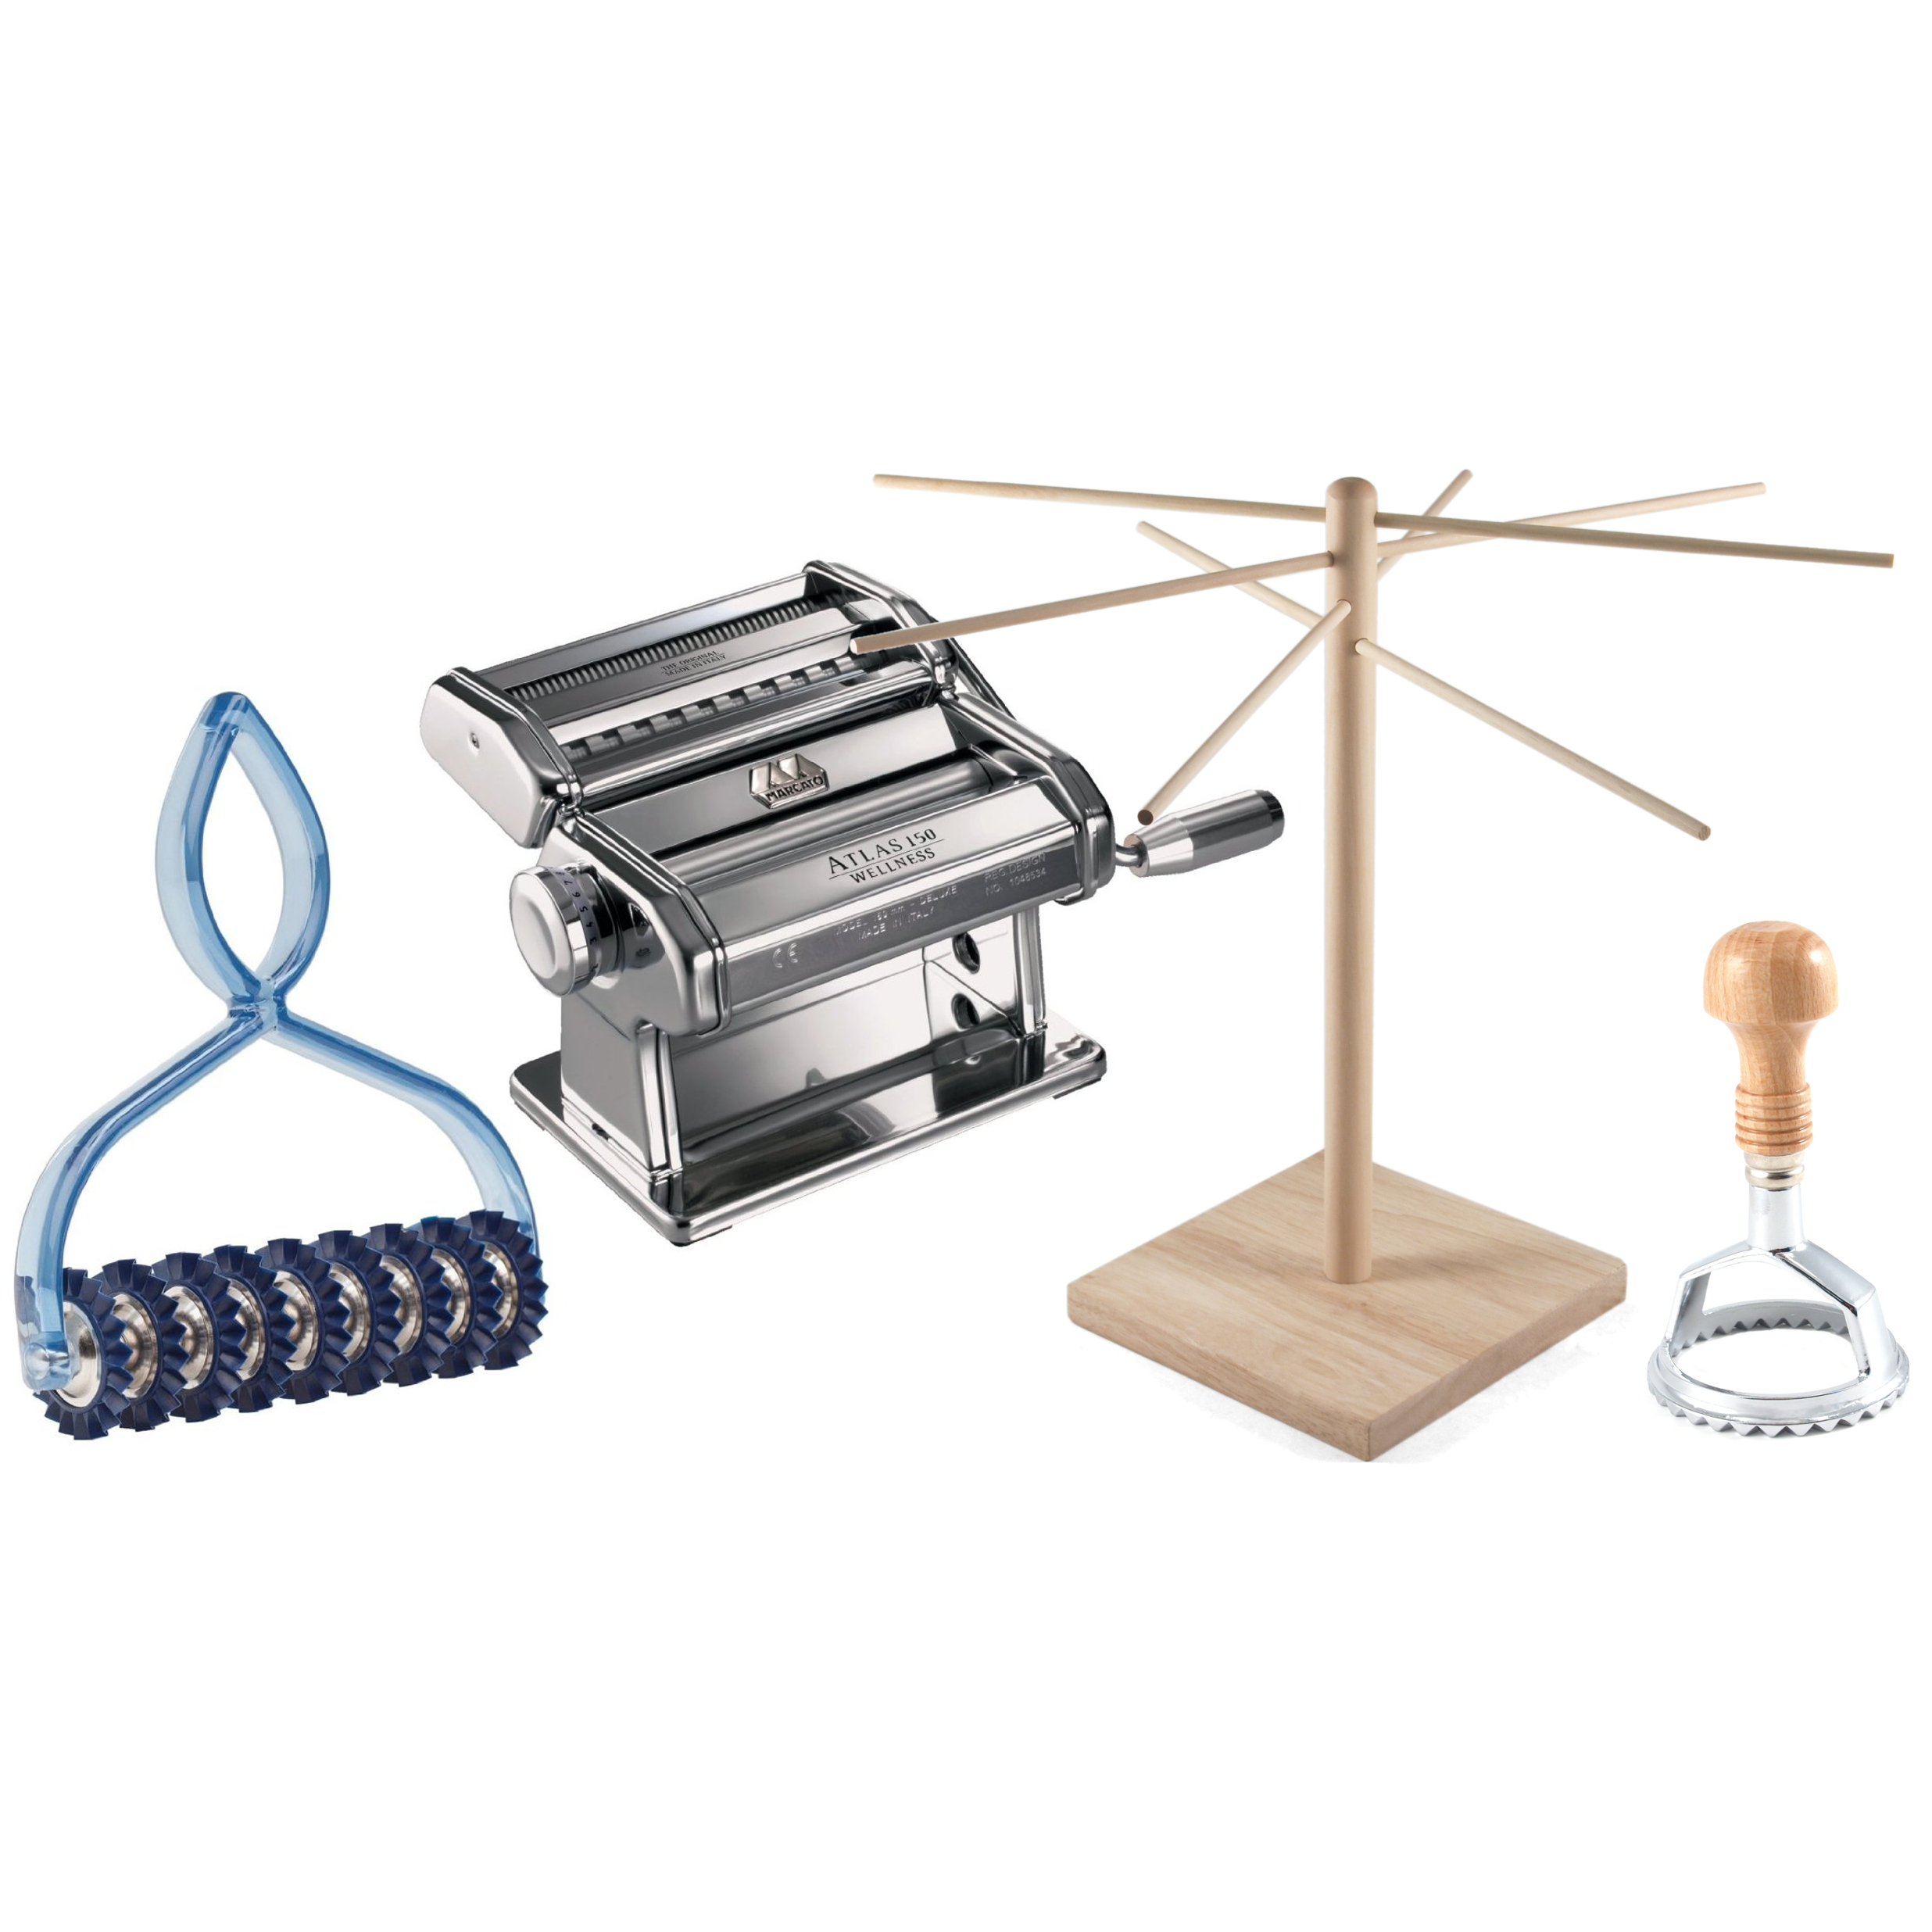 Atlas Stainless Steel 4 Piece Pasta Machine Set with Ravioli Stamp, Pasta Bike, and Drying Rack